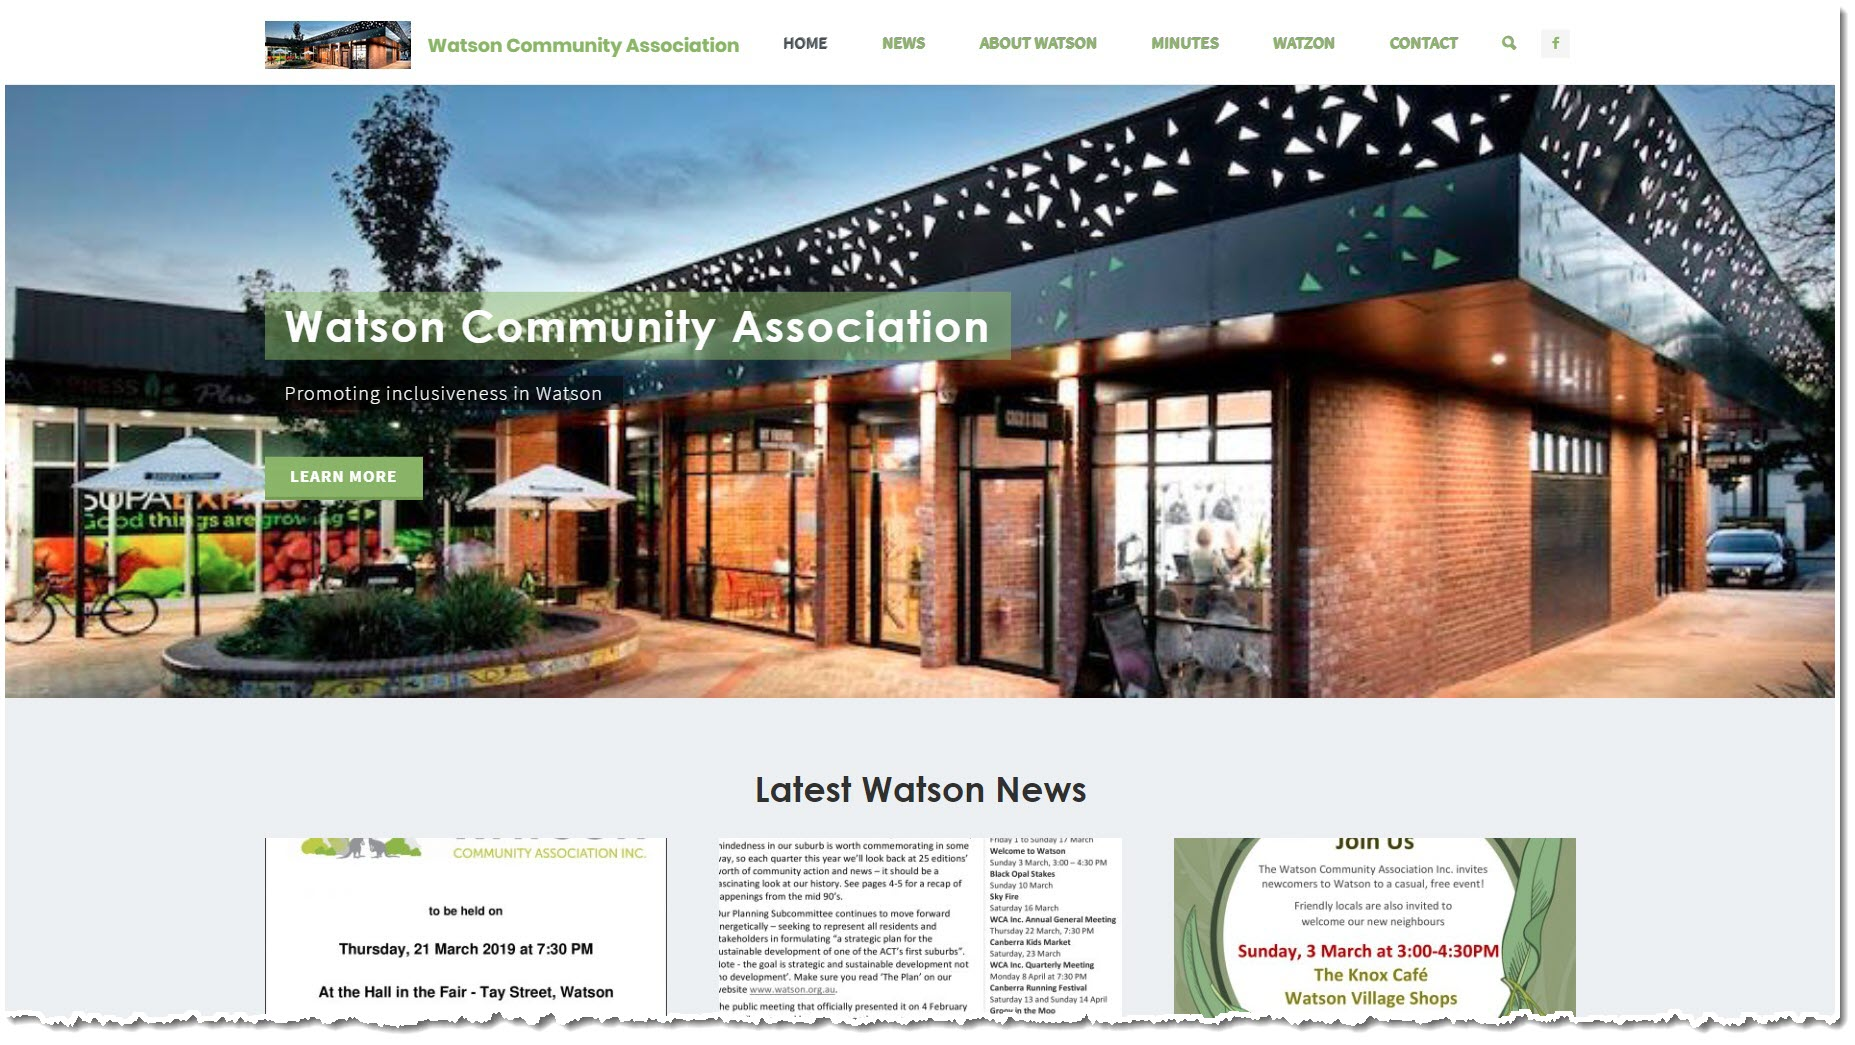 Watson Community Association